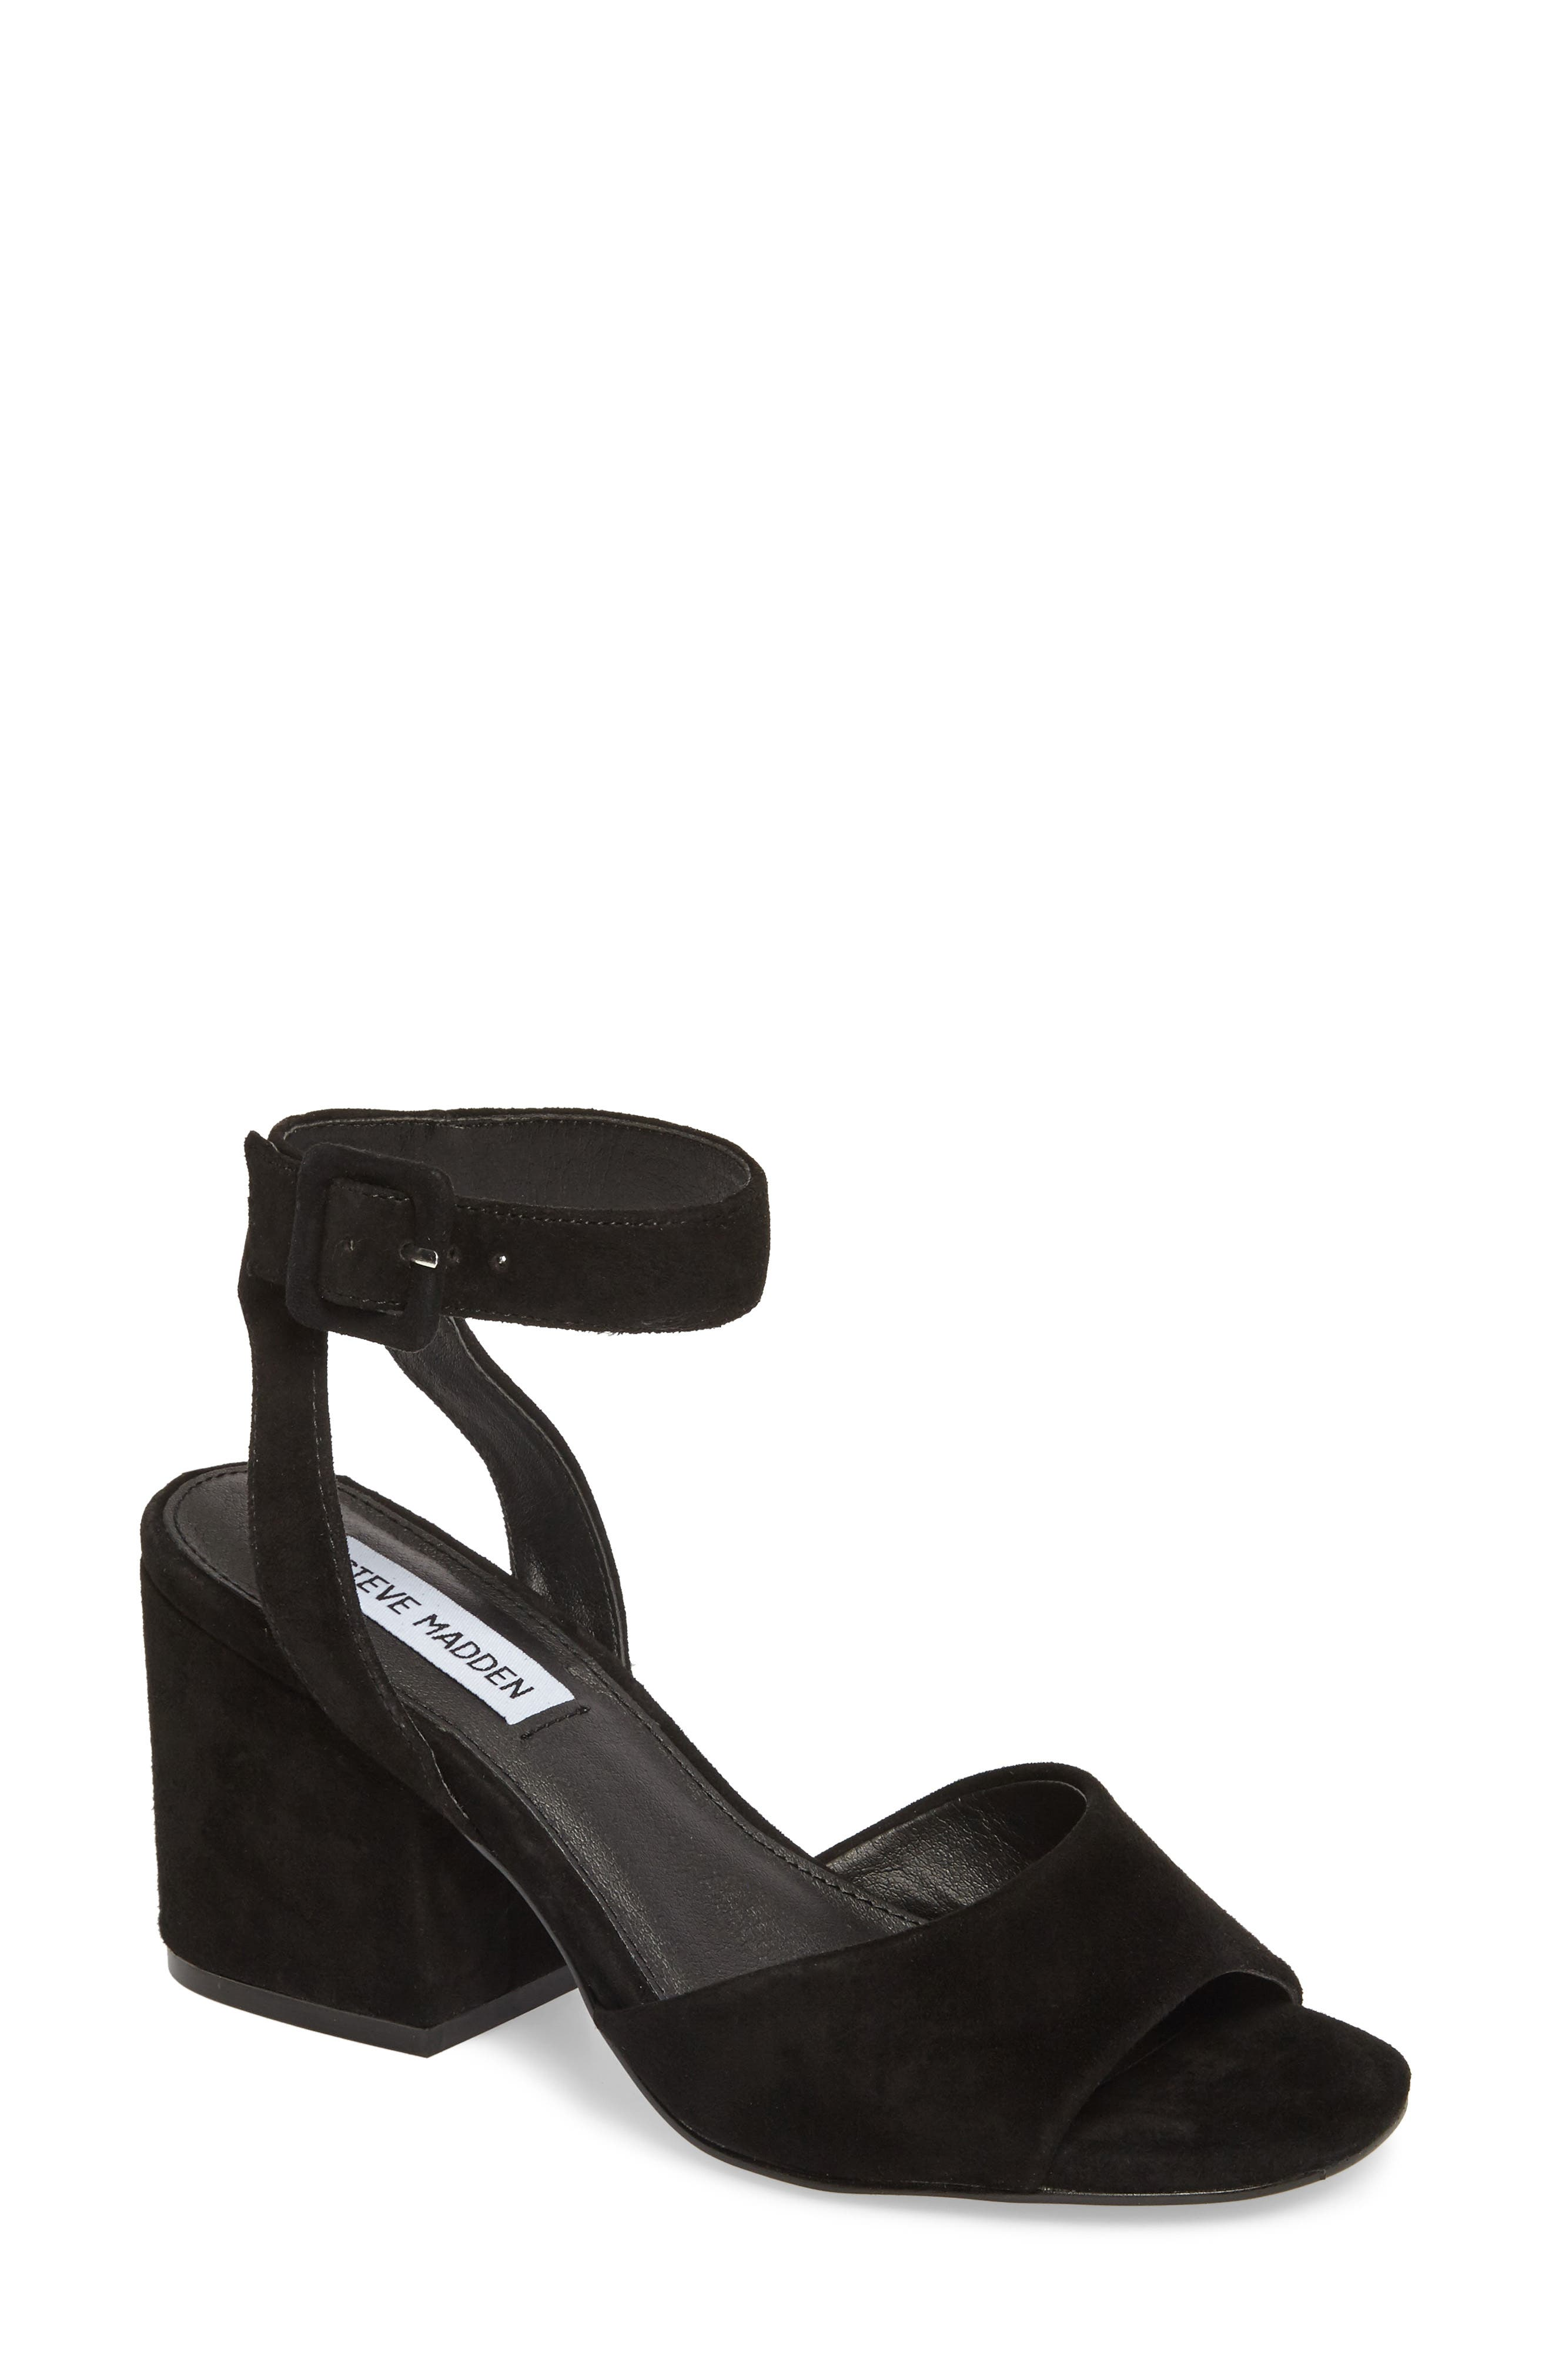 Debbie Sandal,                         Main,                         color, Black Suede